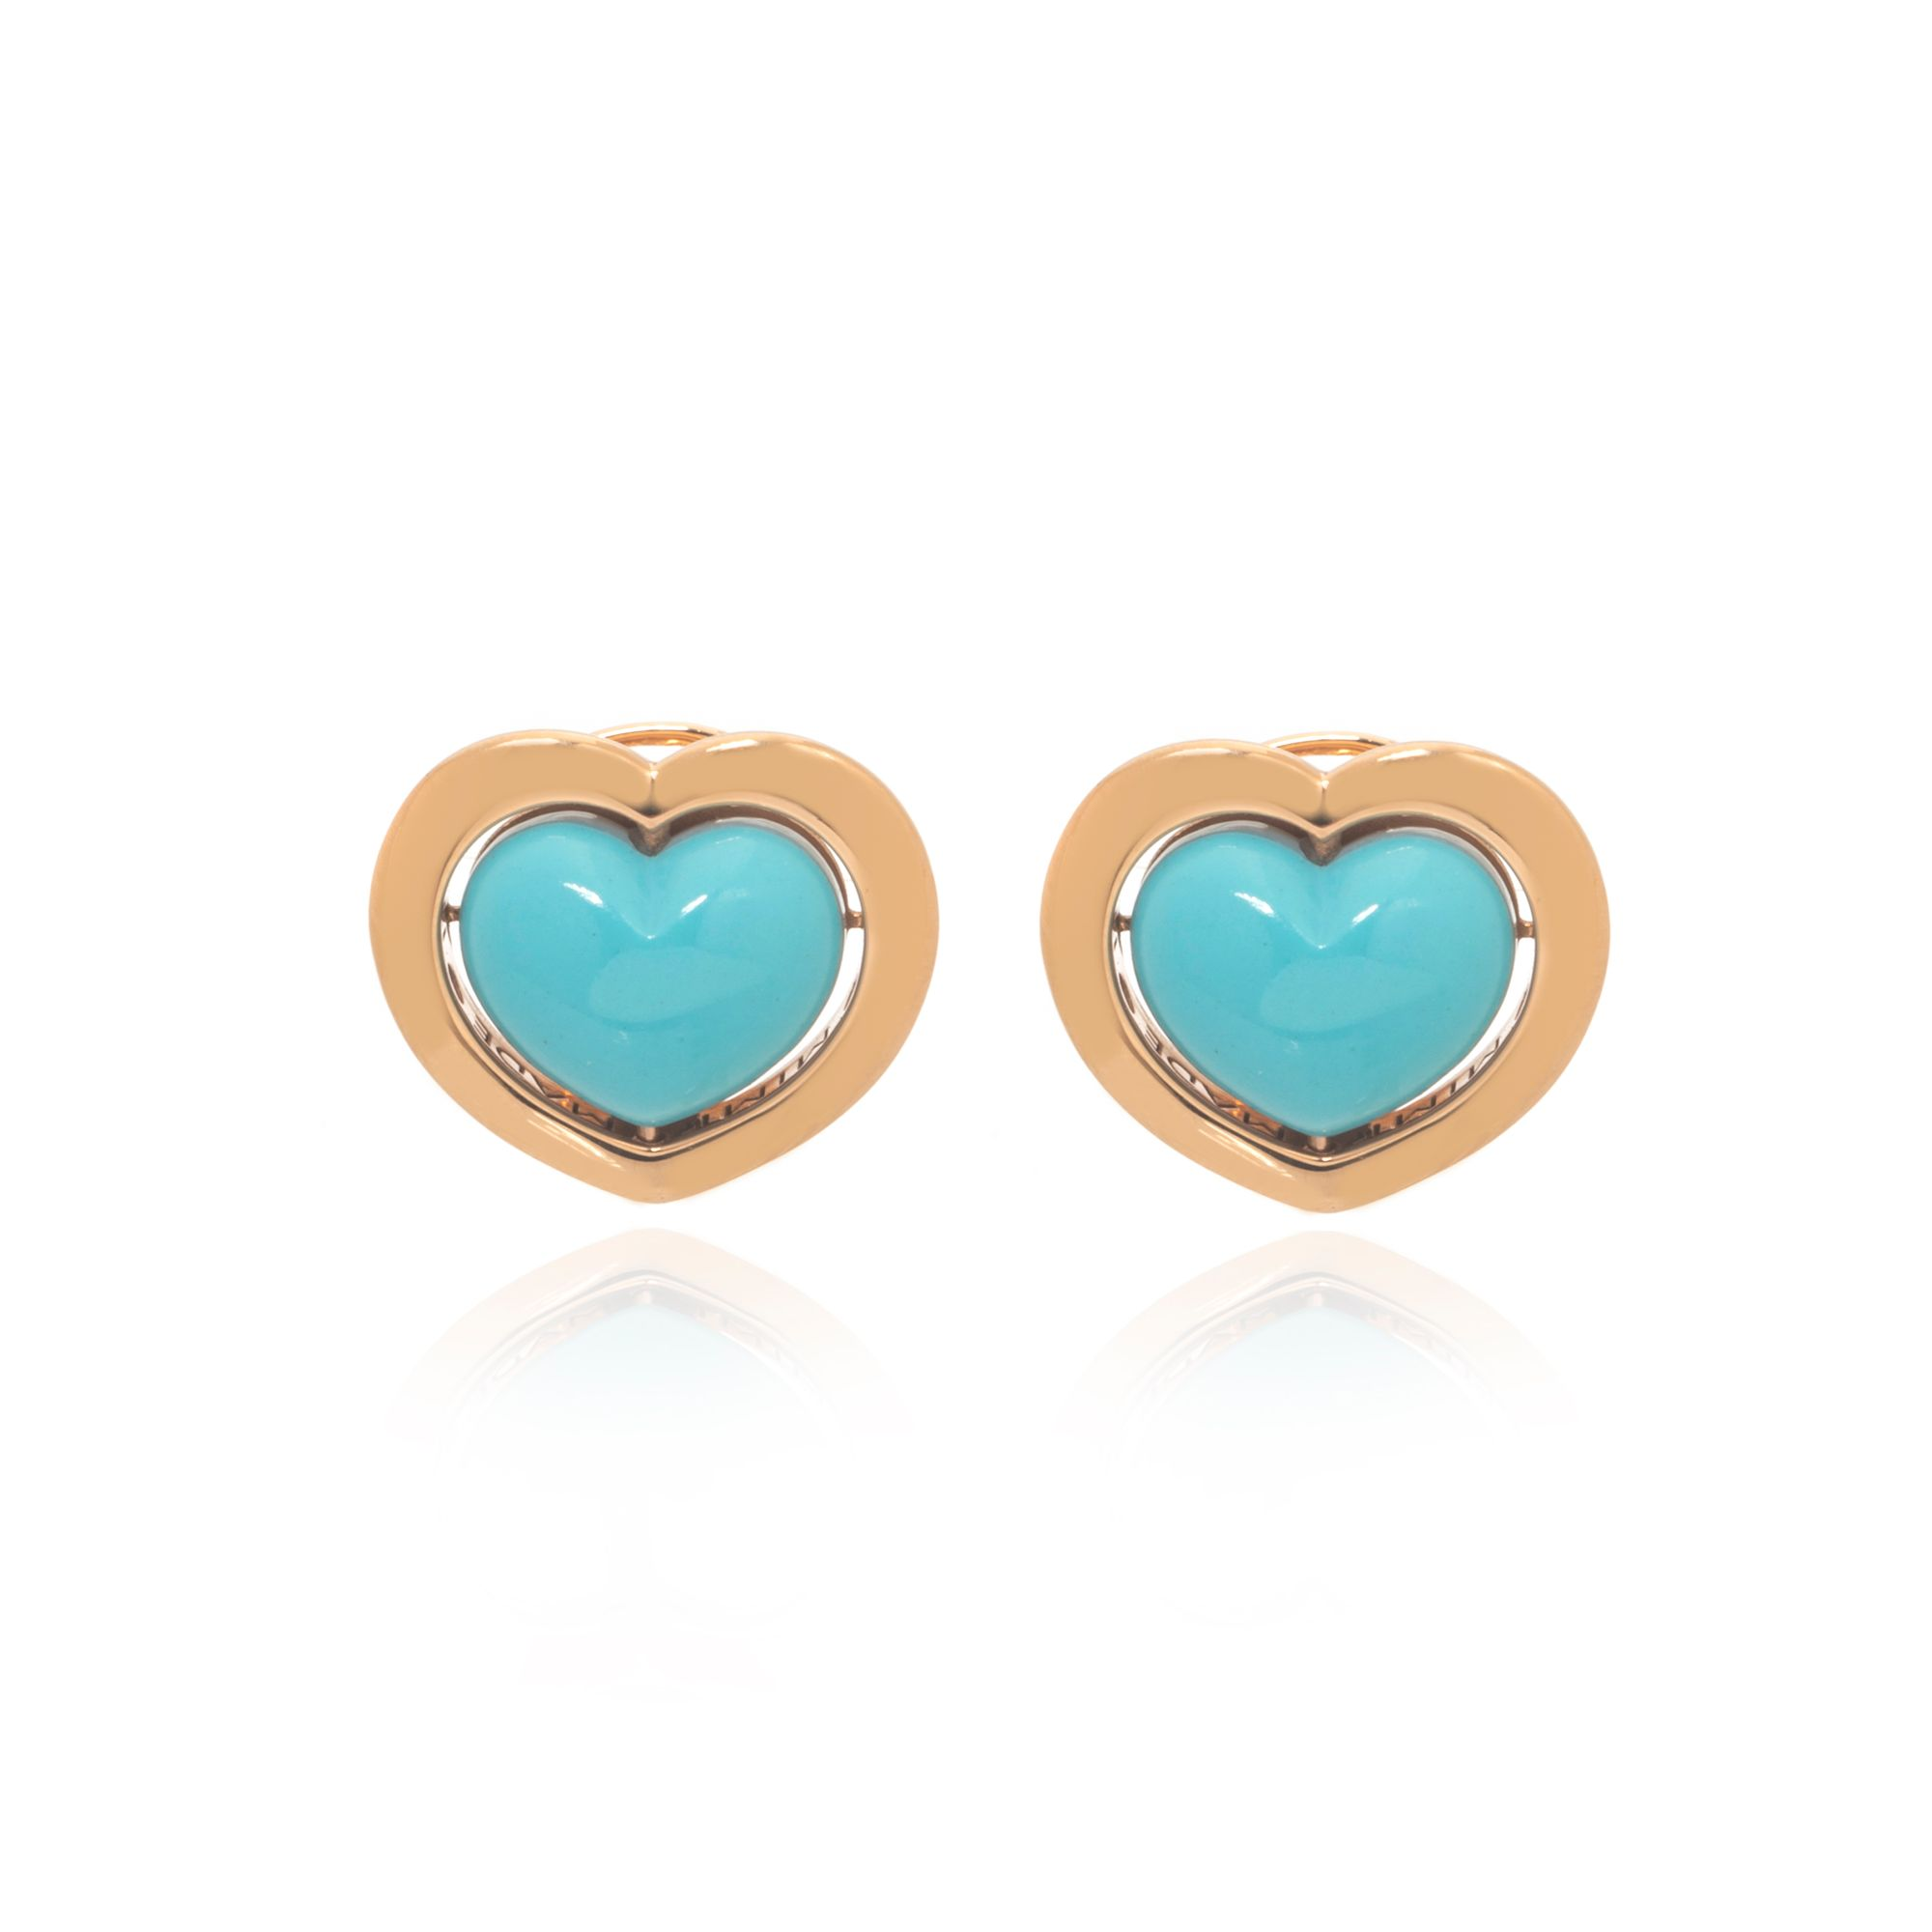 Mimi Milano Giulietta E Romeo 18k Rose Gold And Turquoise Earrings